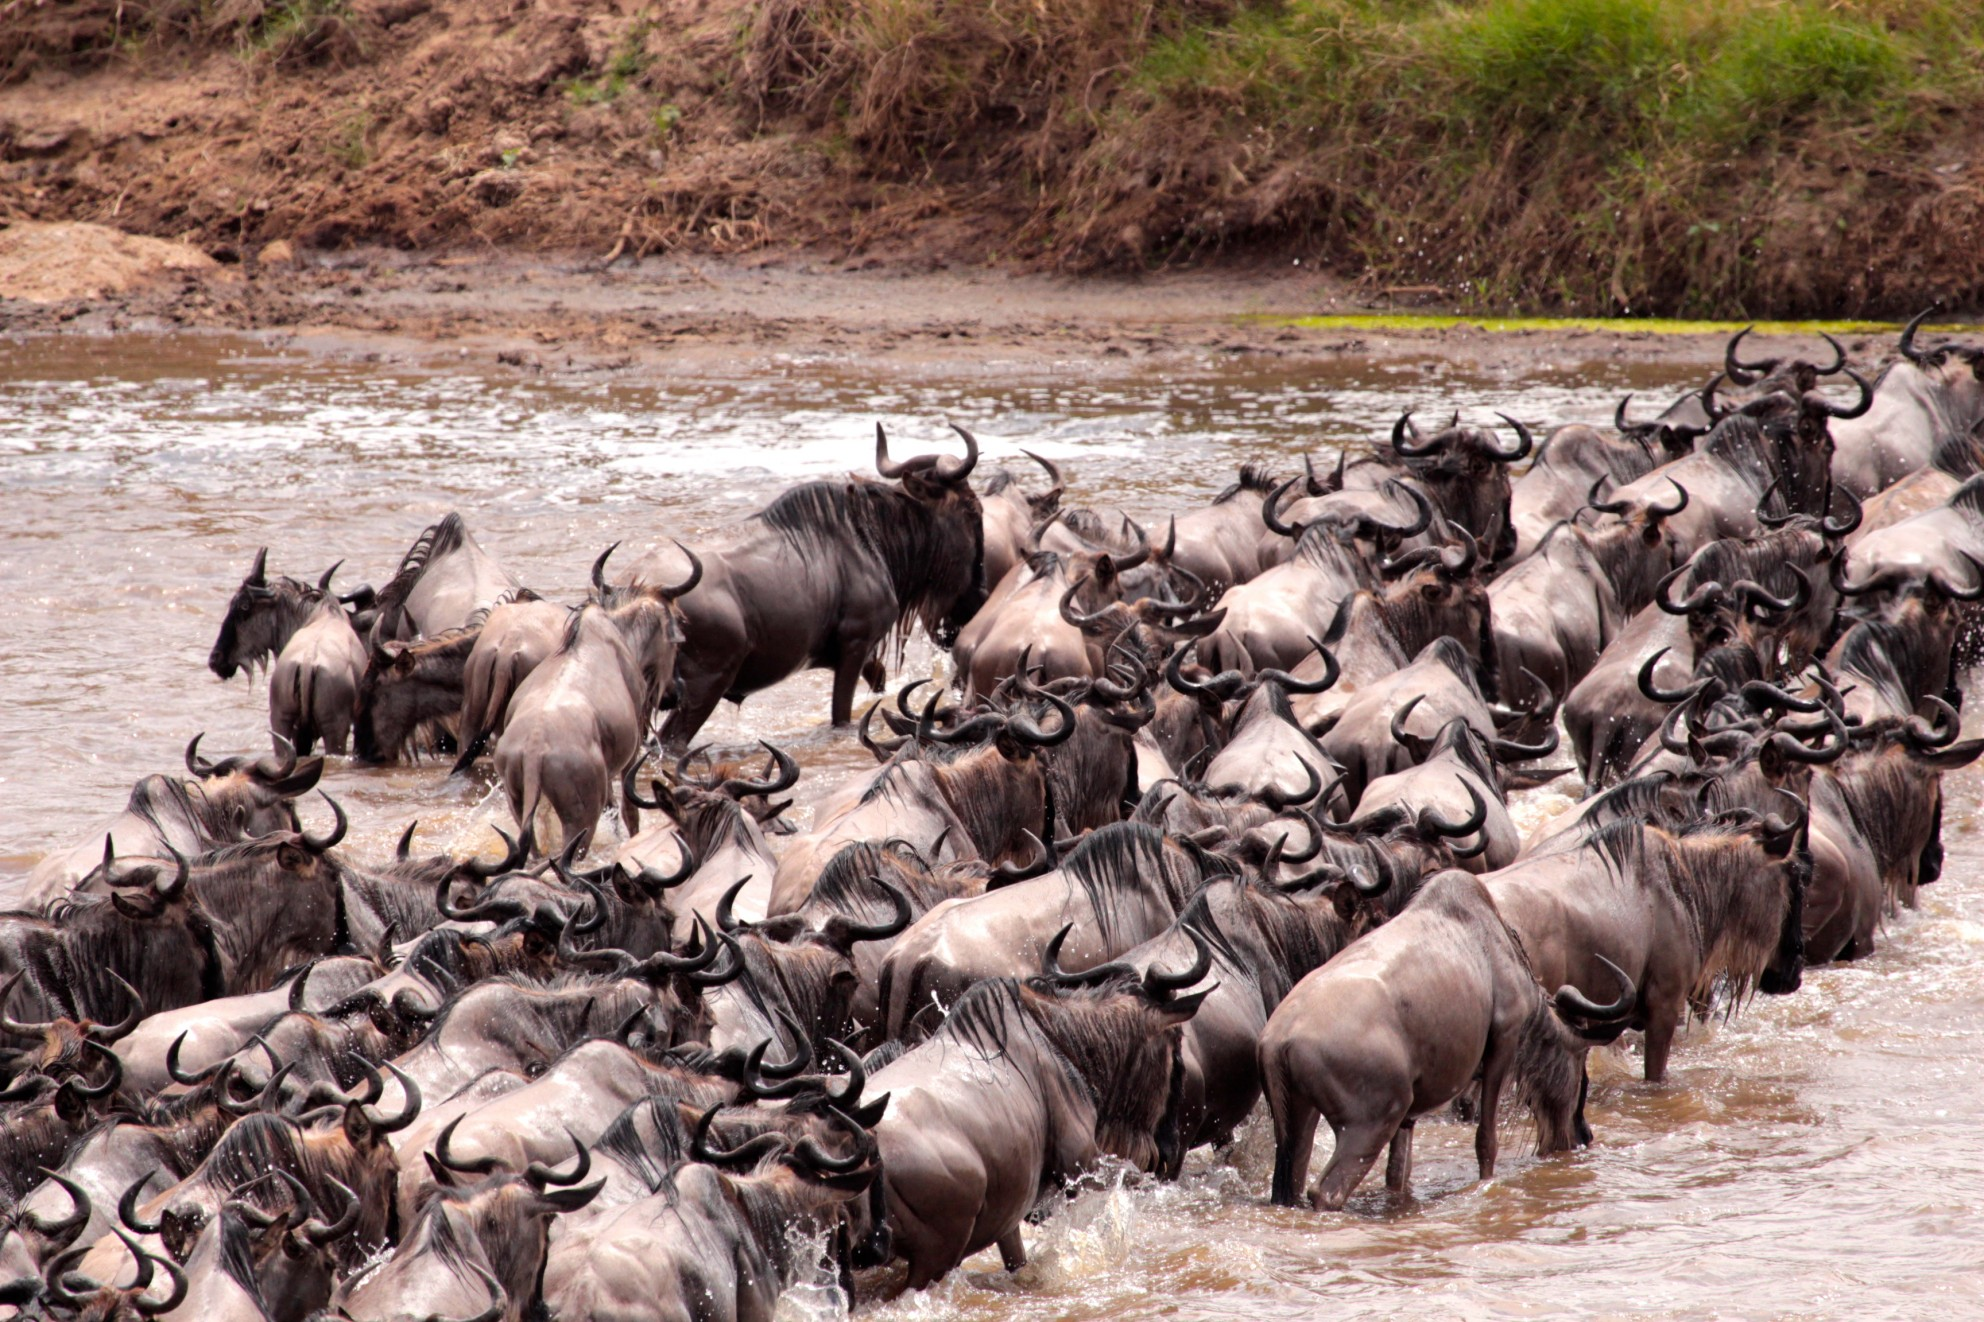 Mara River Tanzania in Africa Answers Photo Contest